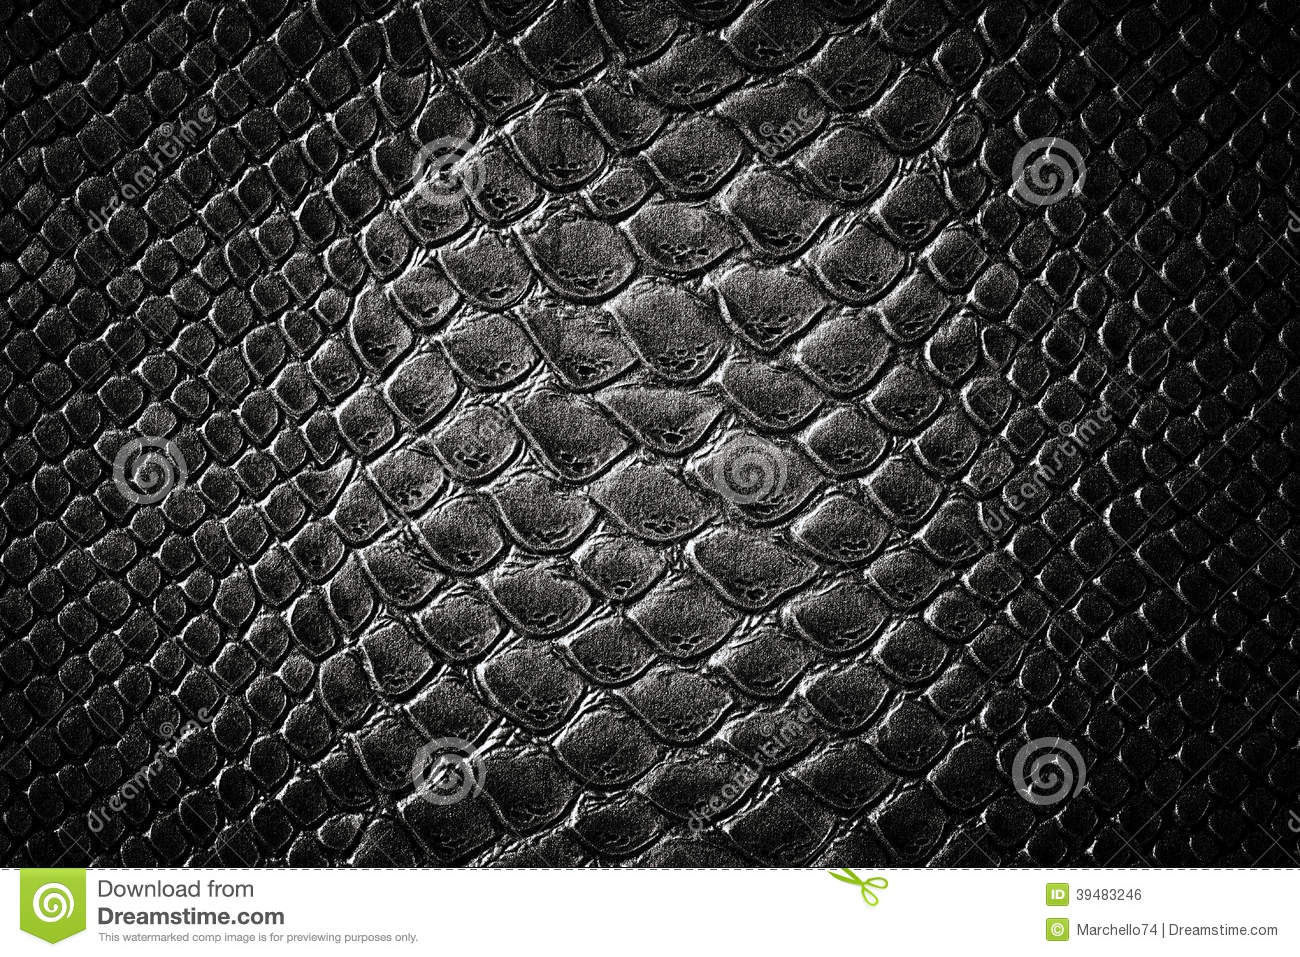 Crocodile Black Skin Texture Stock Photo - Image: 39483246